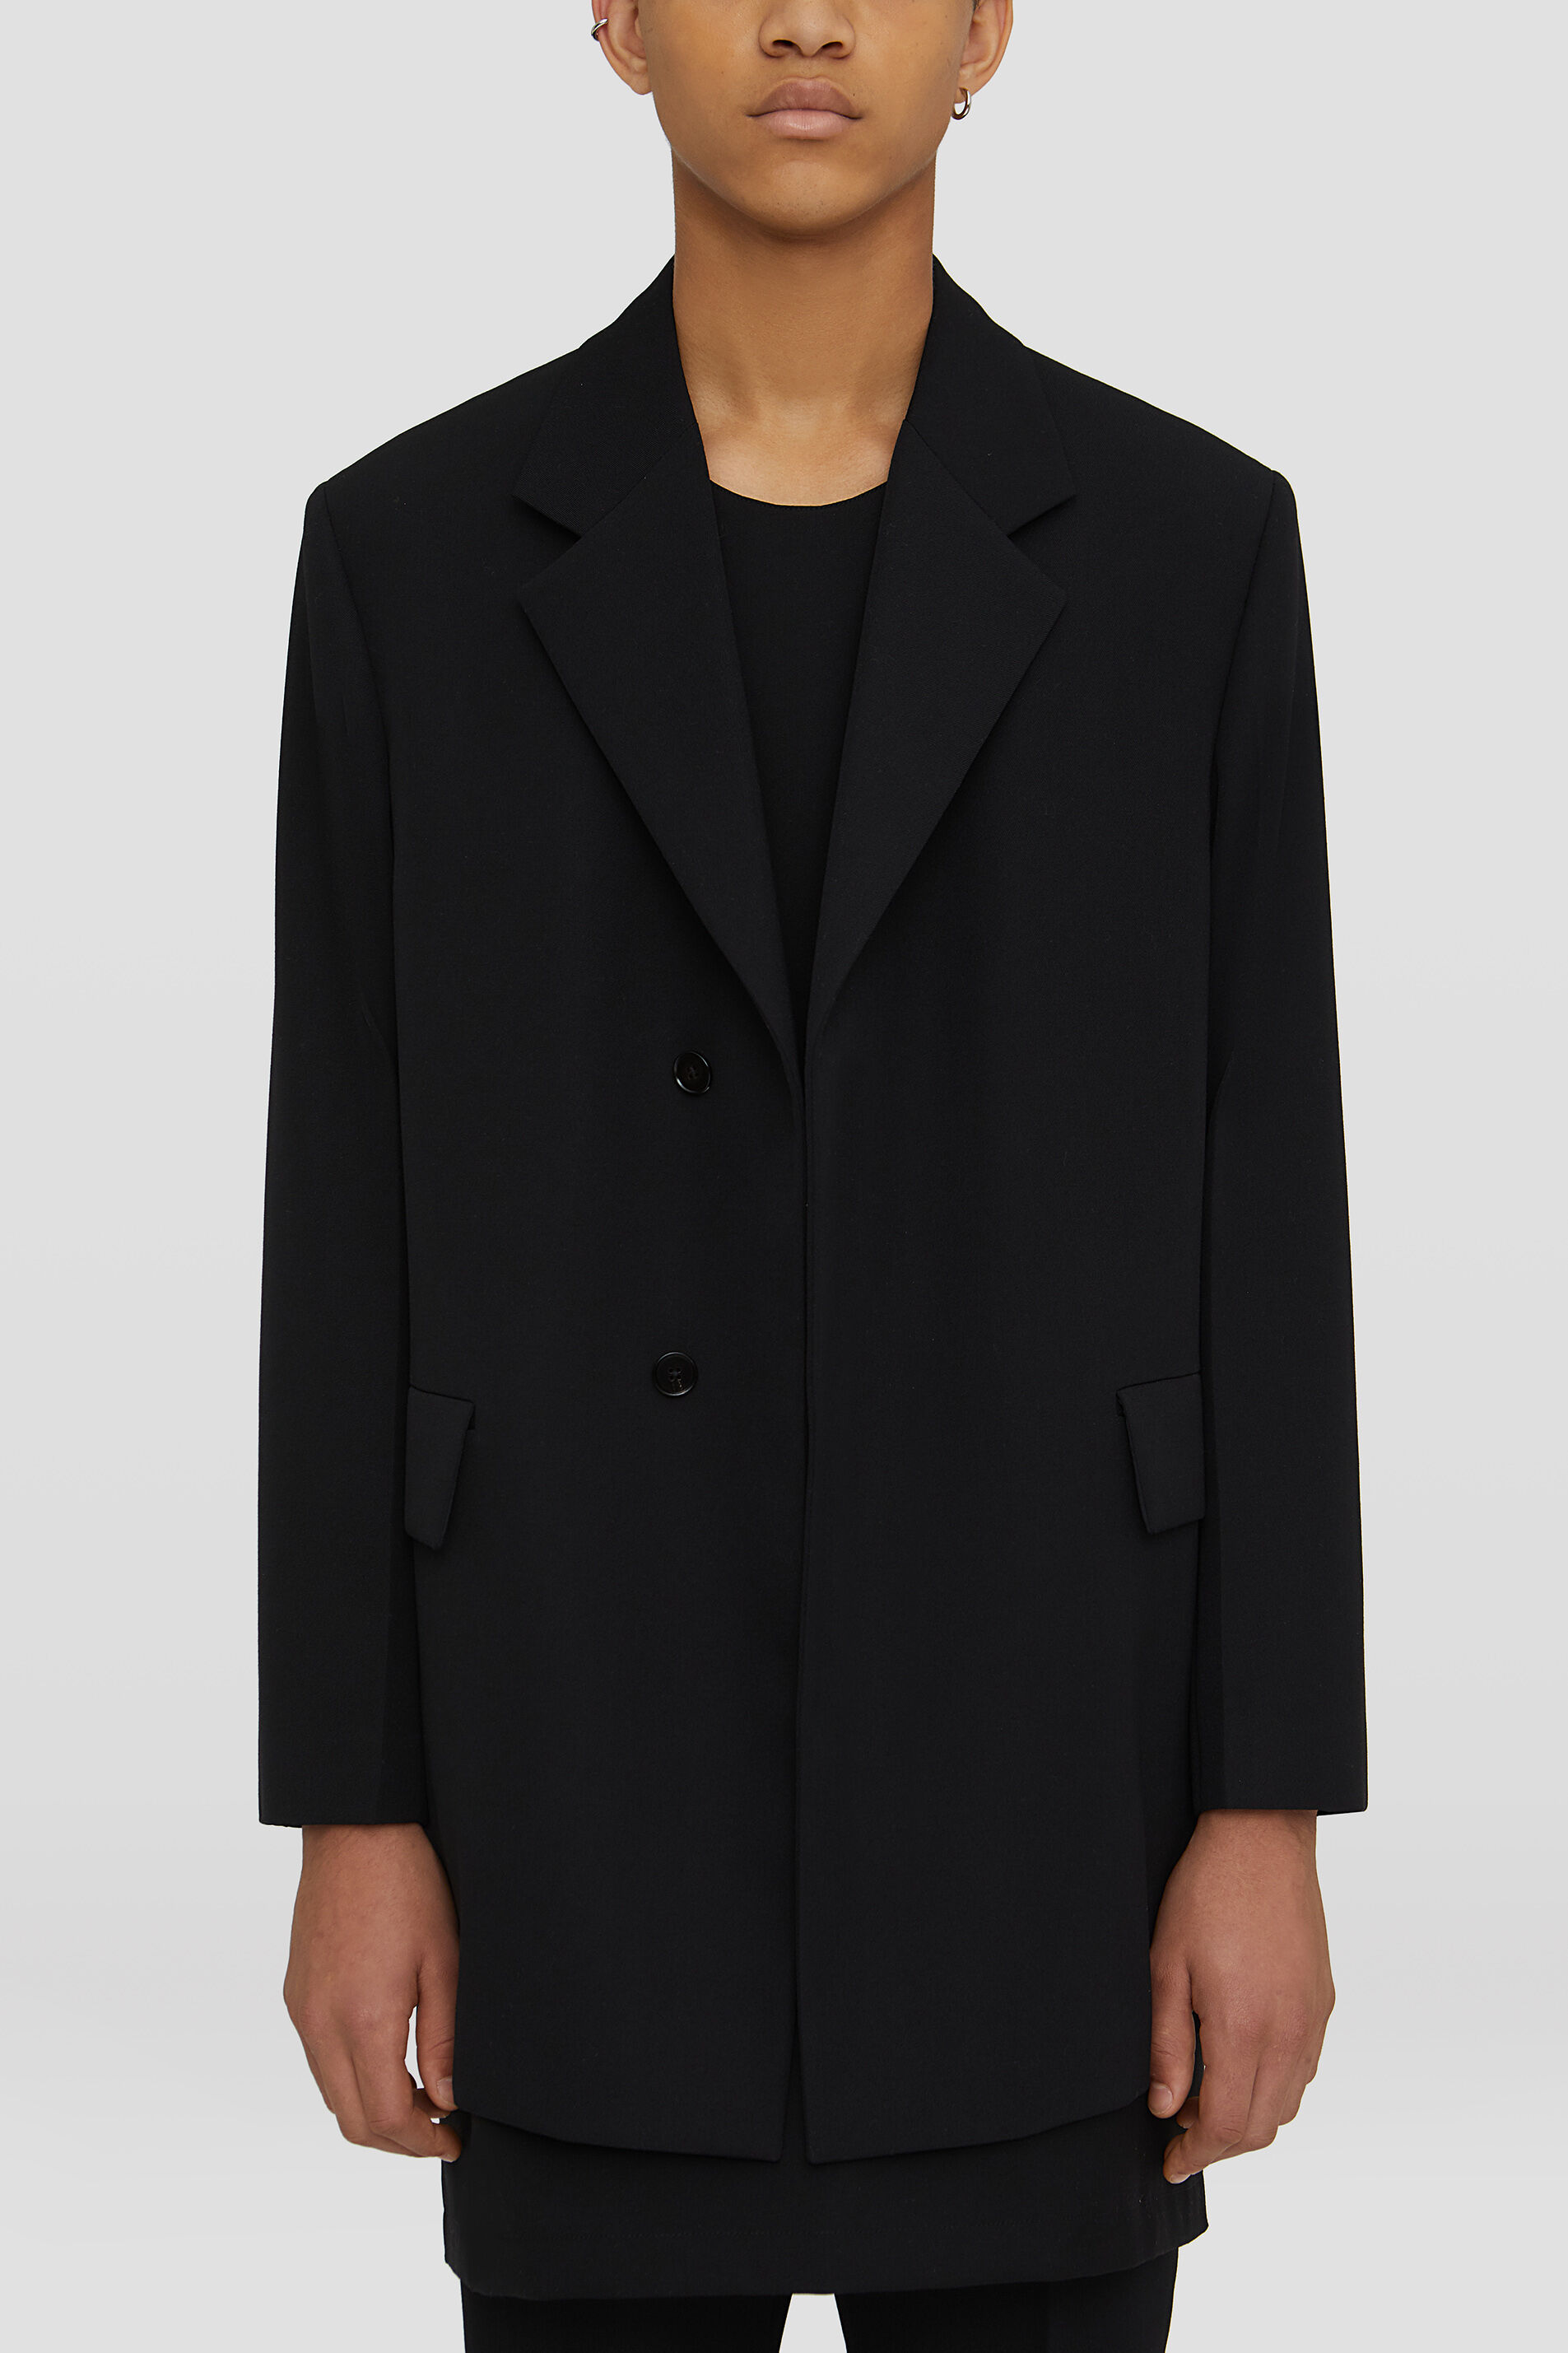 Tailored Jacket, black, large